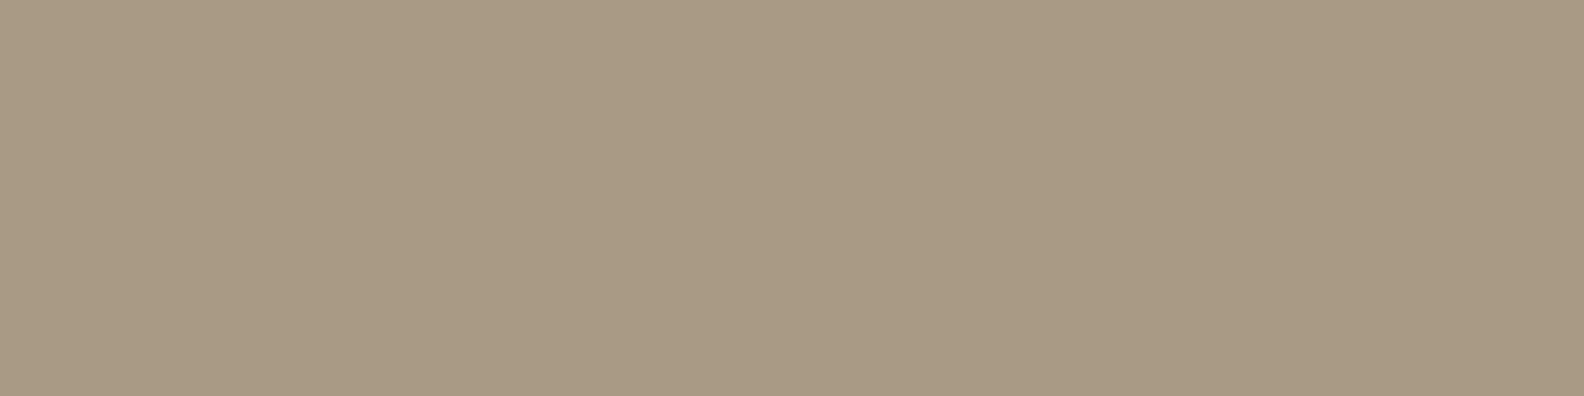 1584x396 Grullo Solid Color Background